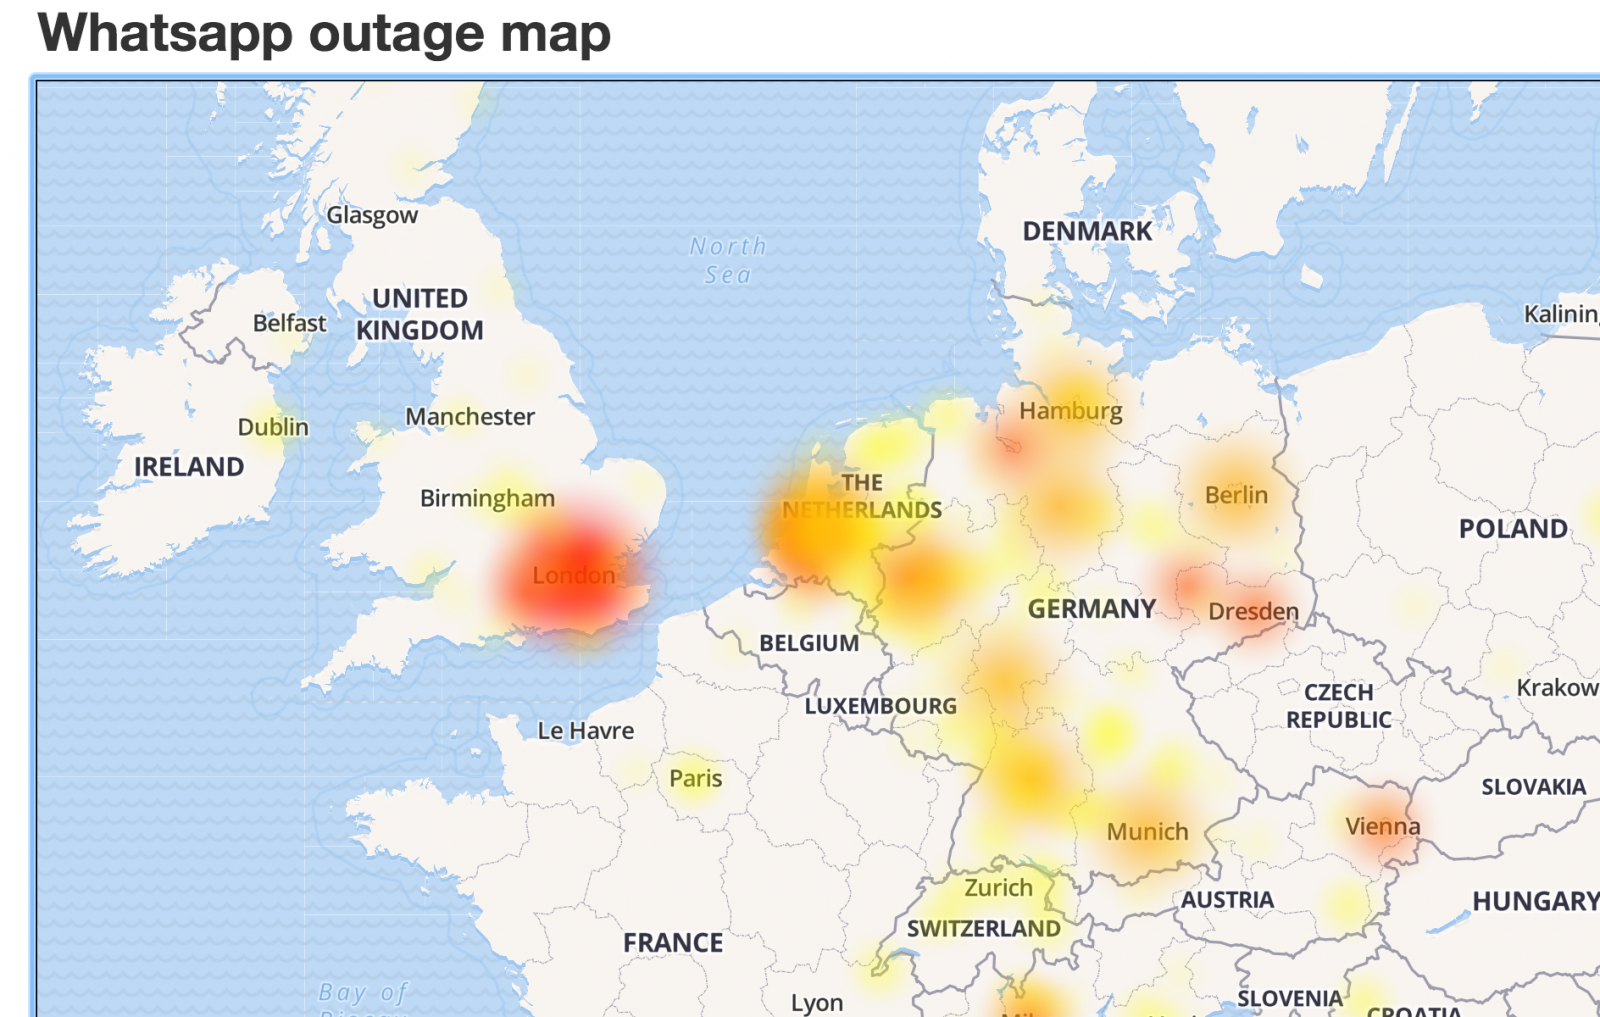 WhatsApp outage